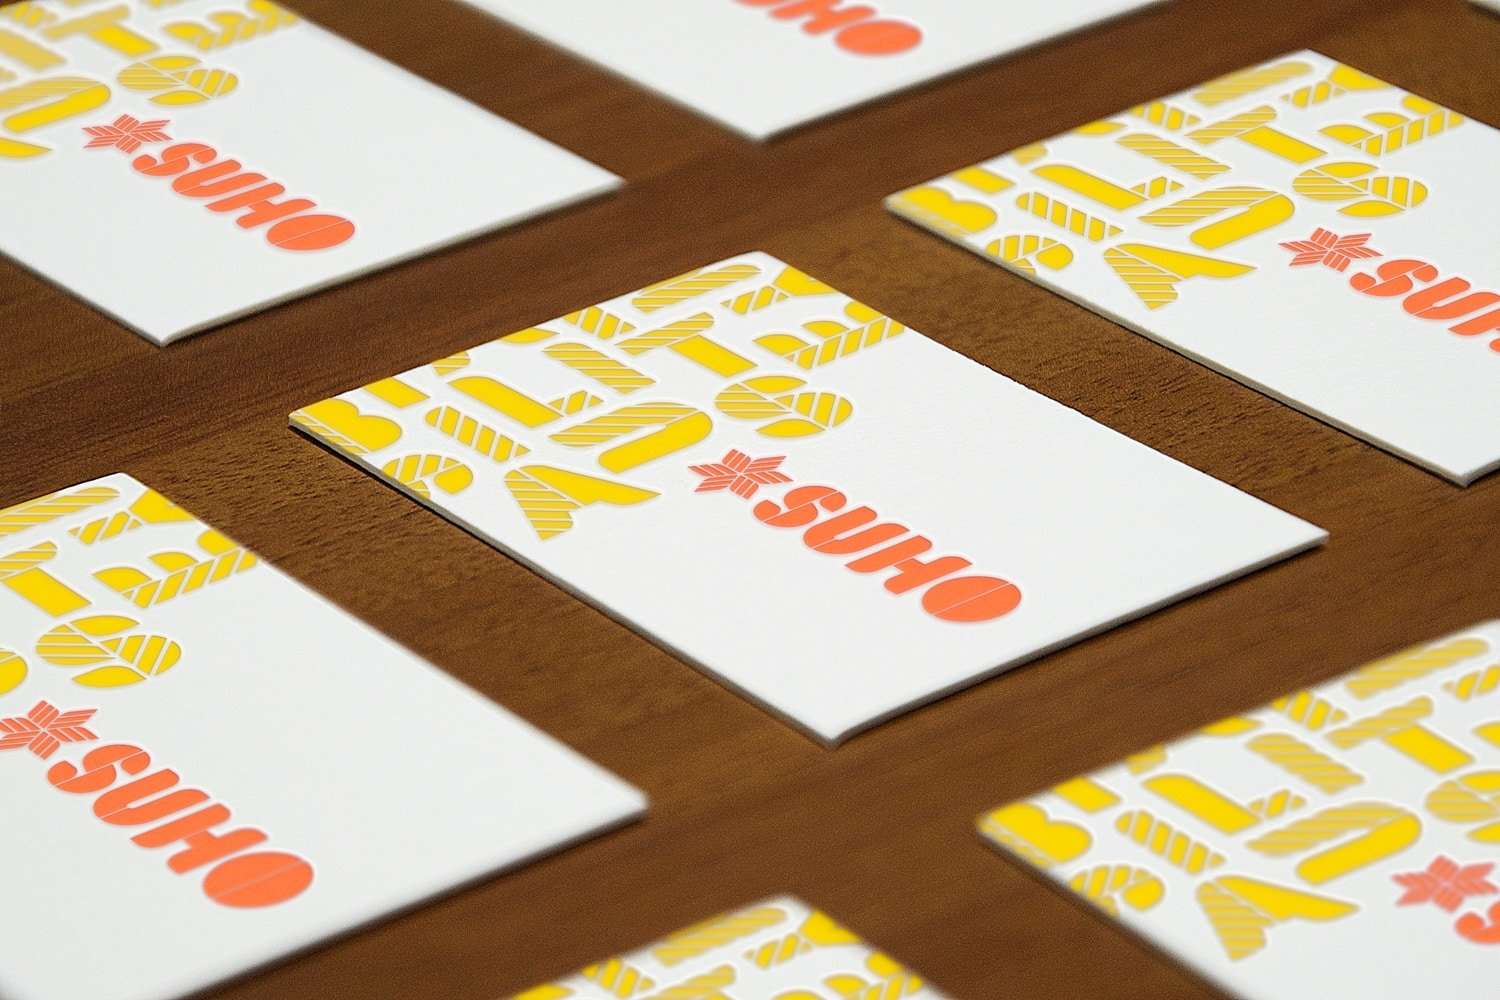 Letterpress business cards for SUHO design consultancy by Flux Visual Communication